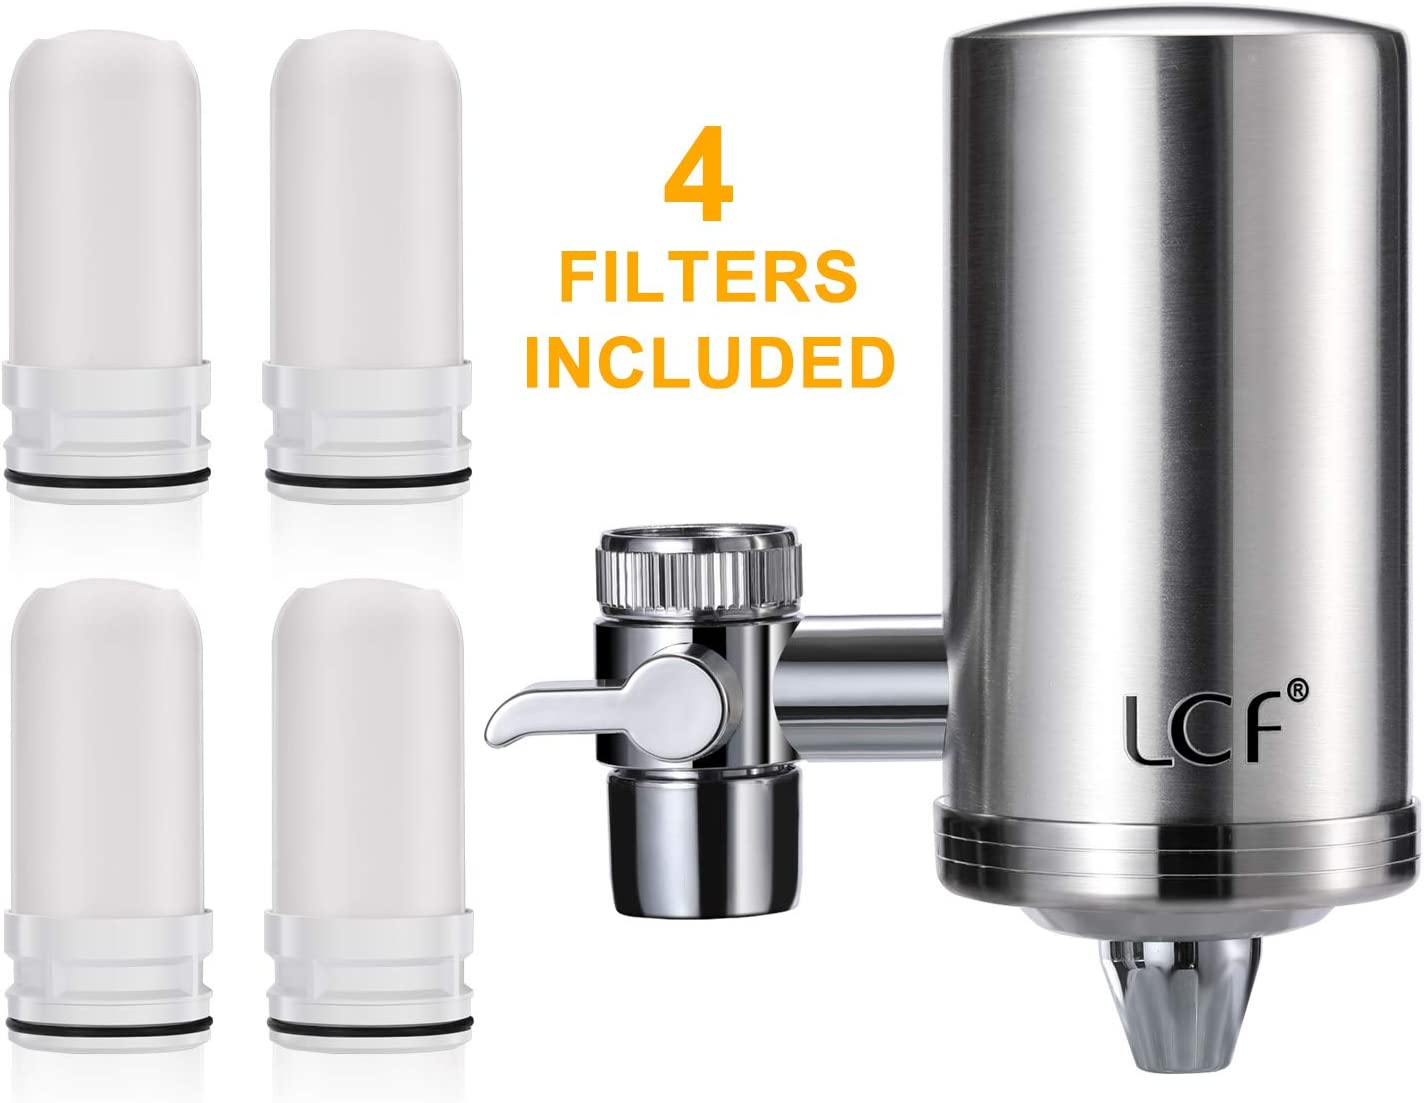 LCF Water Filter Faucet, Food Grade 304 Stainless Steel, Water Purifier with ACF Filter Element, with Double Outlet to Reduce Chlorine,Lead,BPA Free and Improve Hard Water(4 Filters Included)